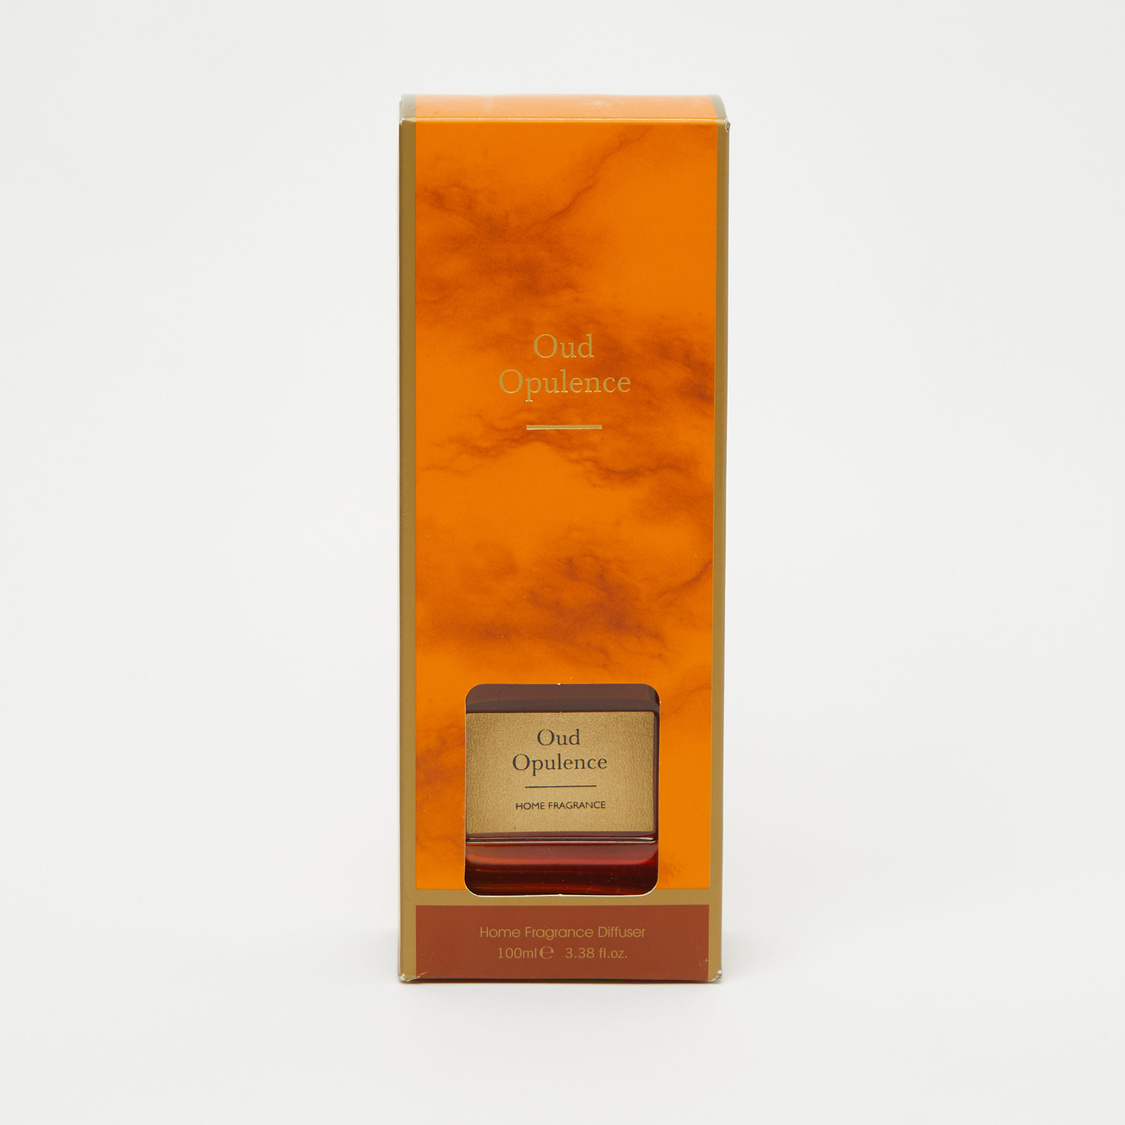 Oud Opulence Reed Diffuser 7x4x10 cms